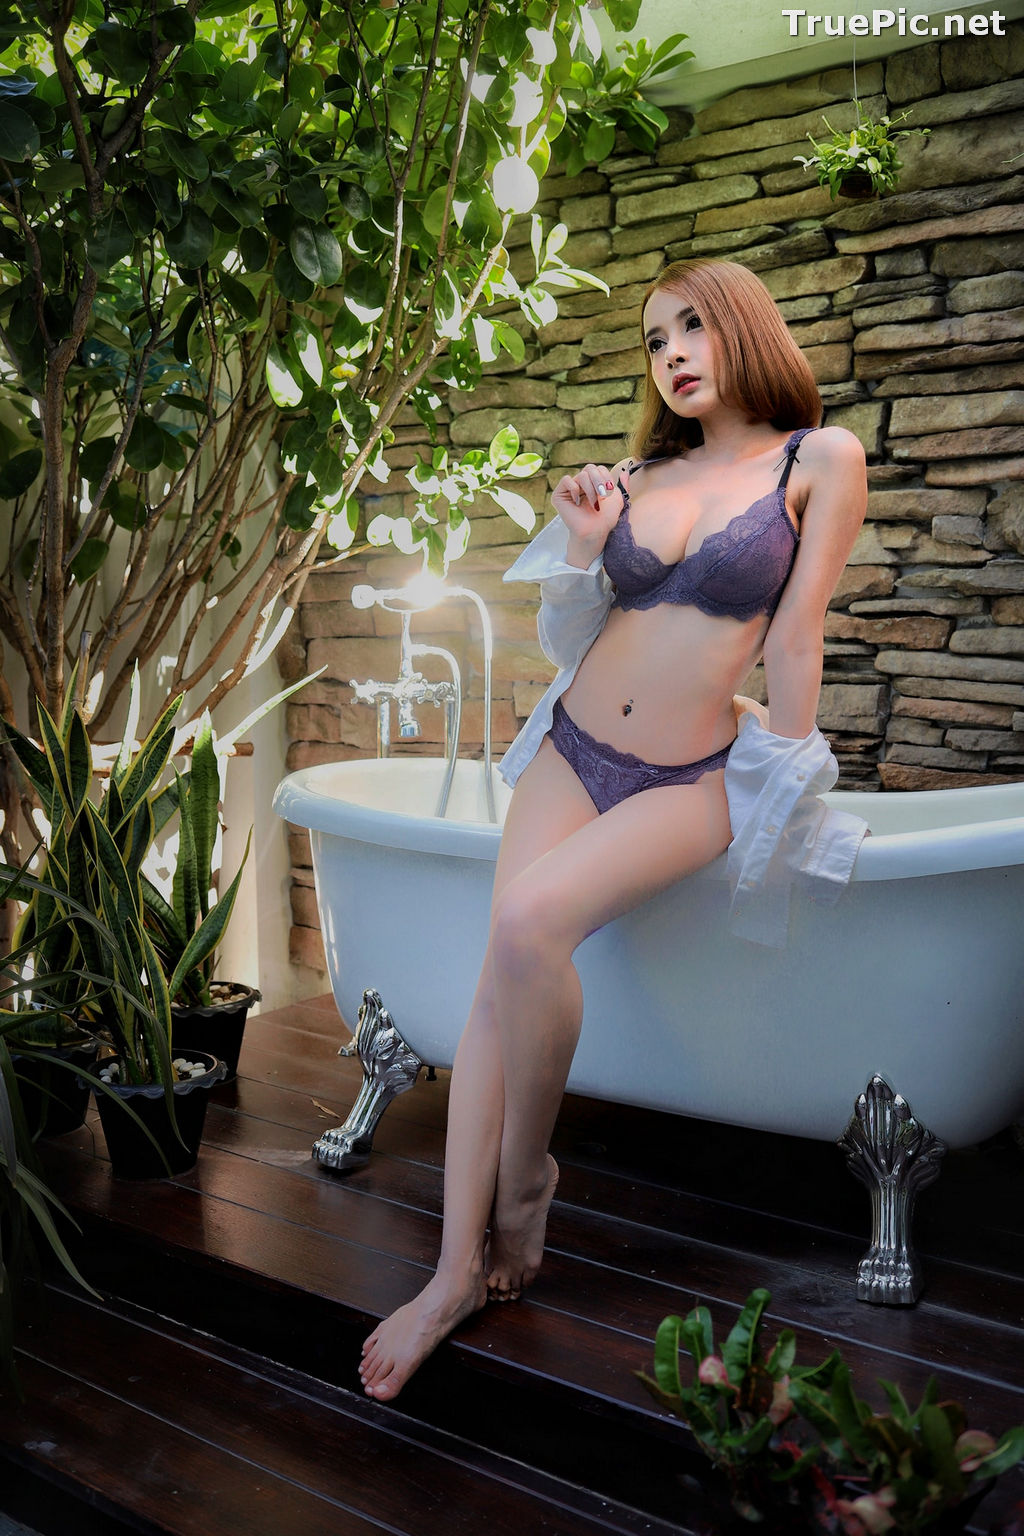 Image Thailand Model - ธนพร อ้นเซ่ง - Sexy In Purple Lingerie - TruePic.net - Picture-4